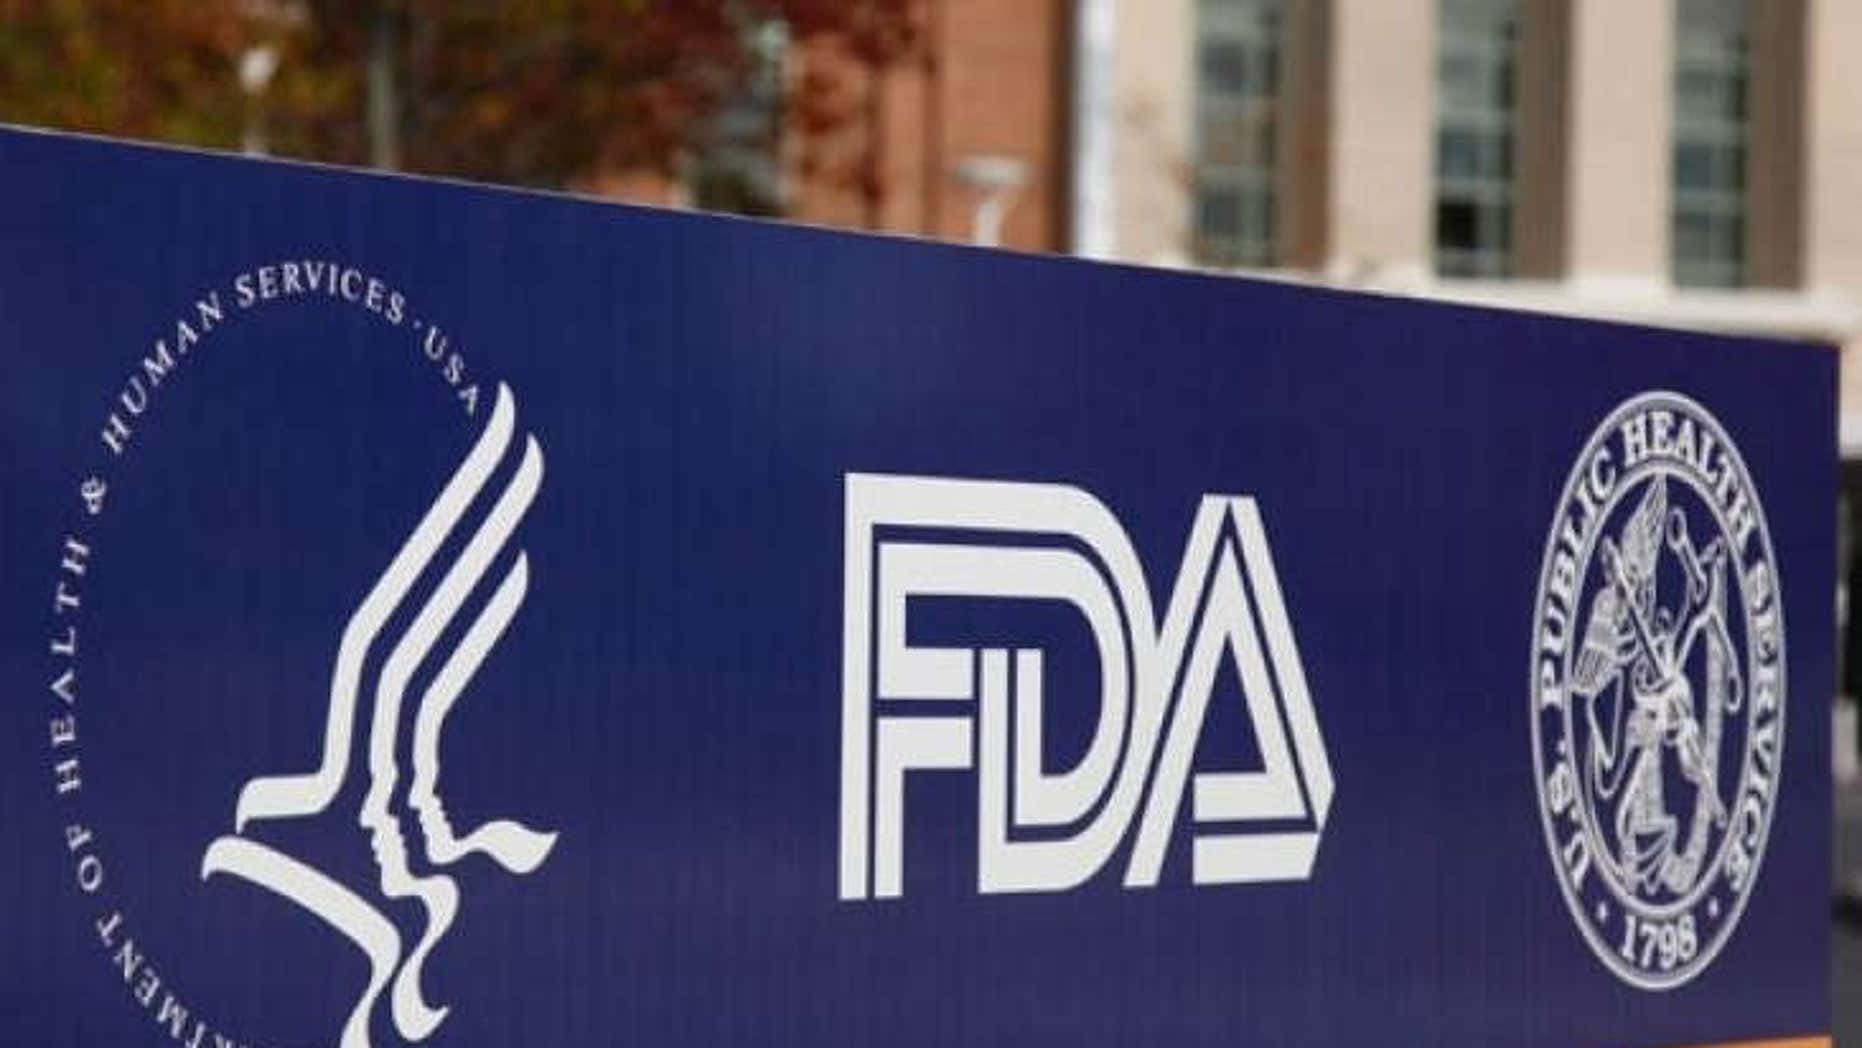 Fda Accepts Merck Application For Lung Cancer Combo Therapy Fox News